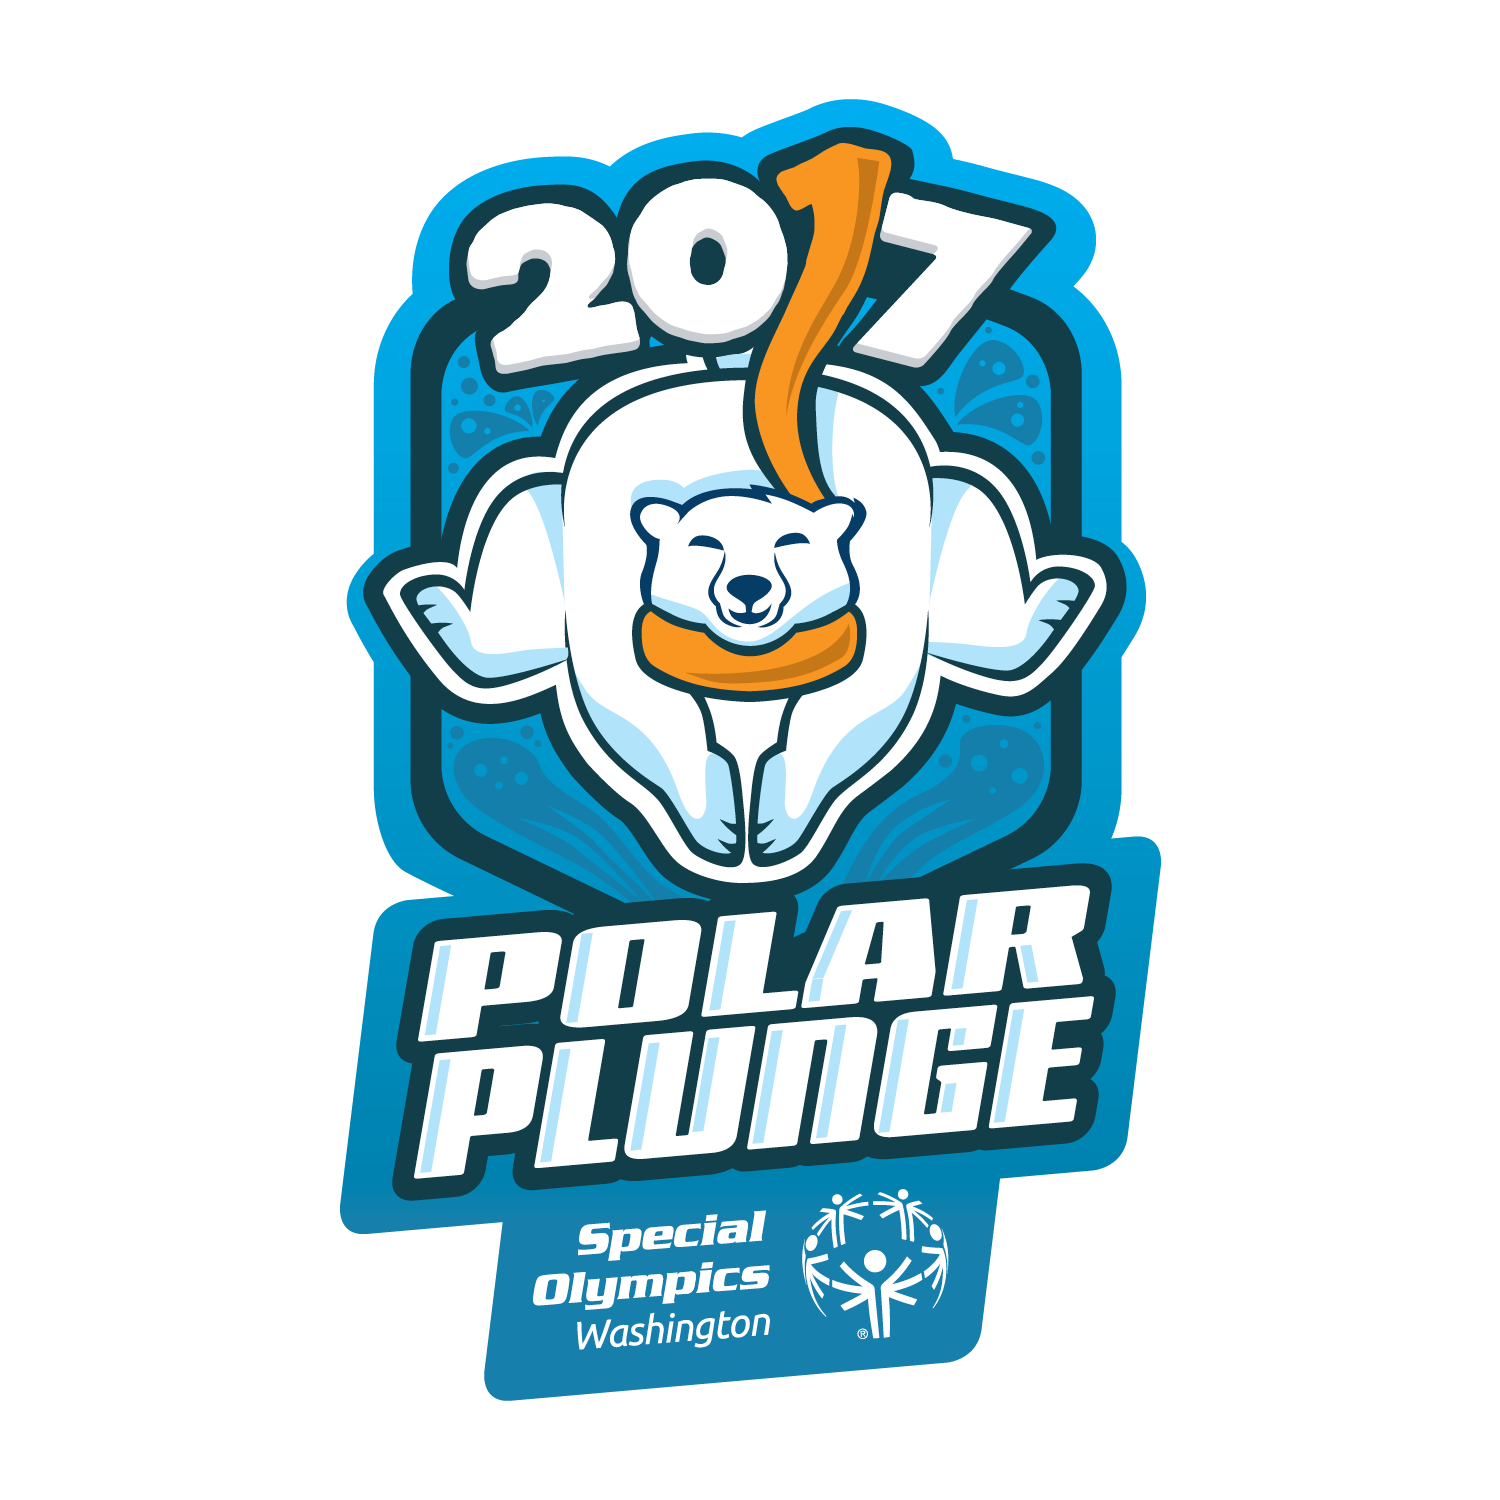 2017 Special Olympics Polar Plunge